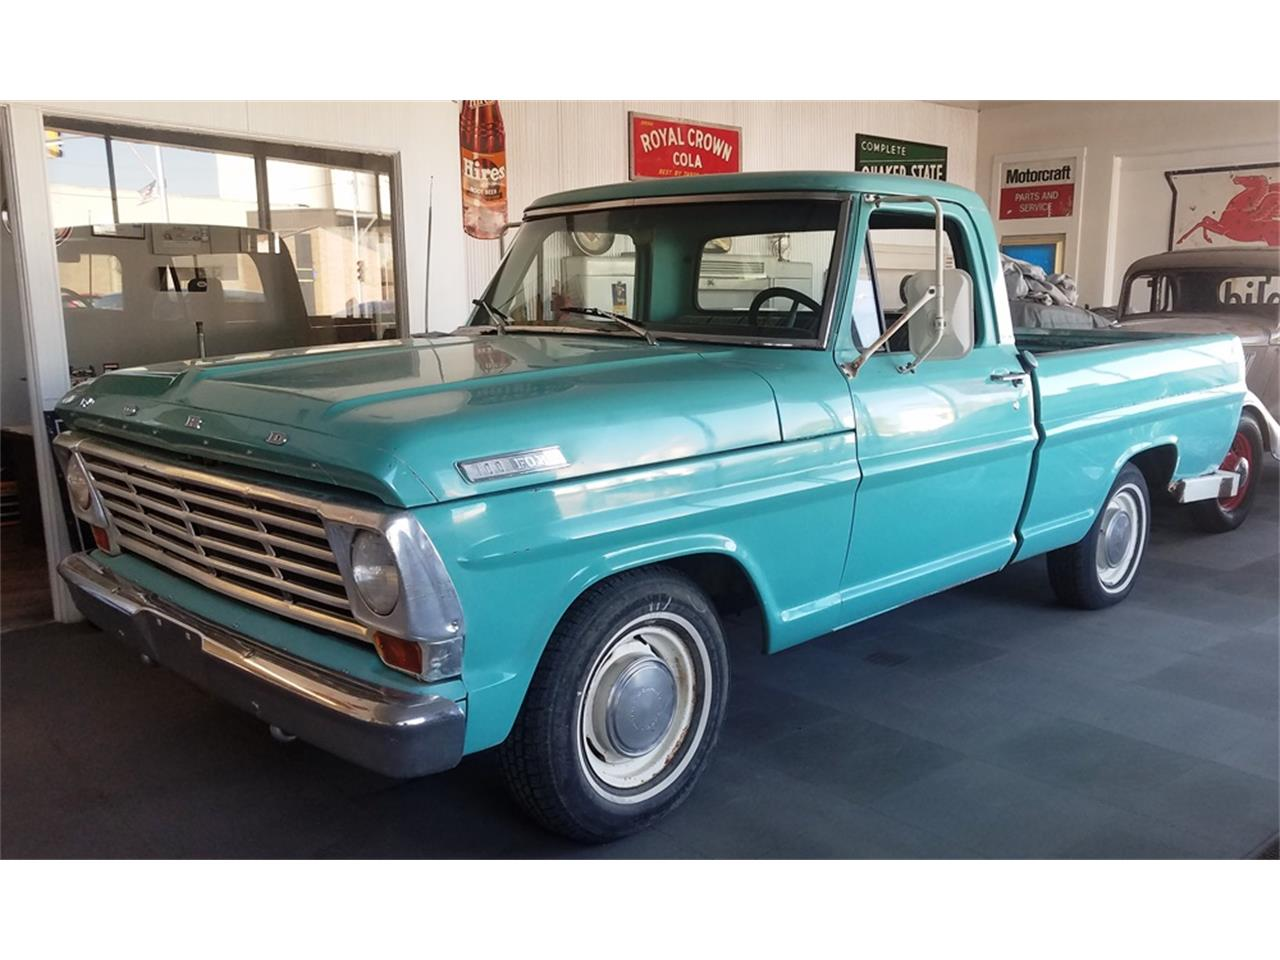 1967 Ford F100 Parts Is Your Car 1955 Door Glass And Weatherstrip Seals Source Best Photos About Picimages Org